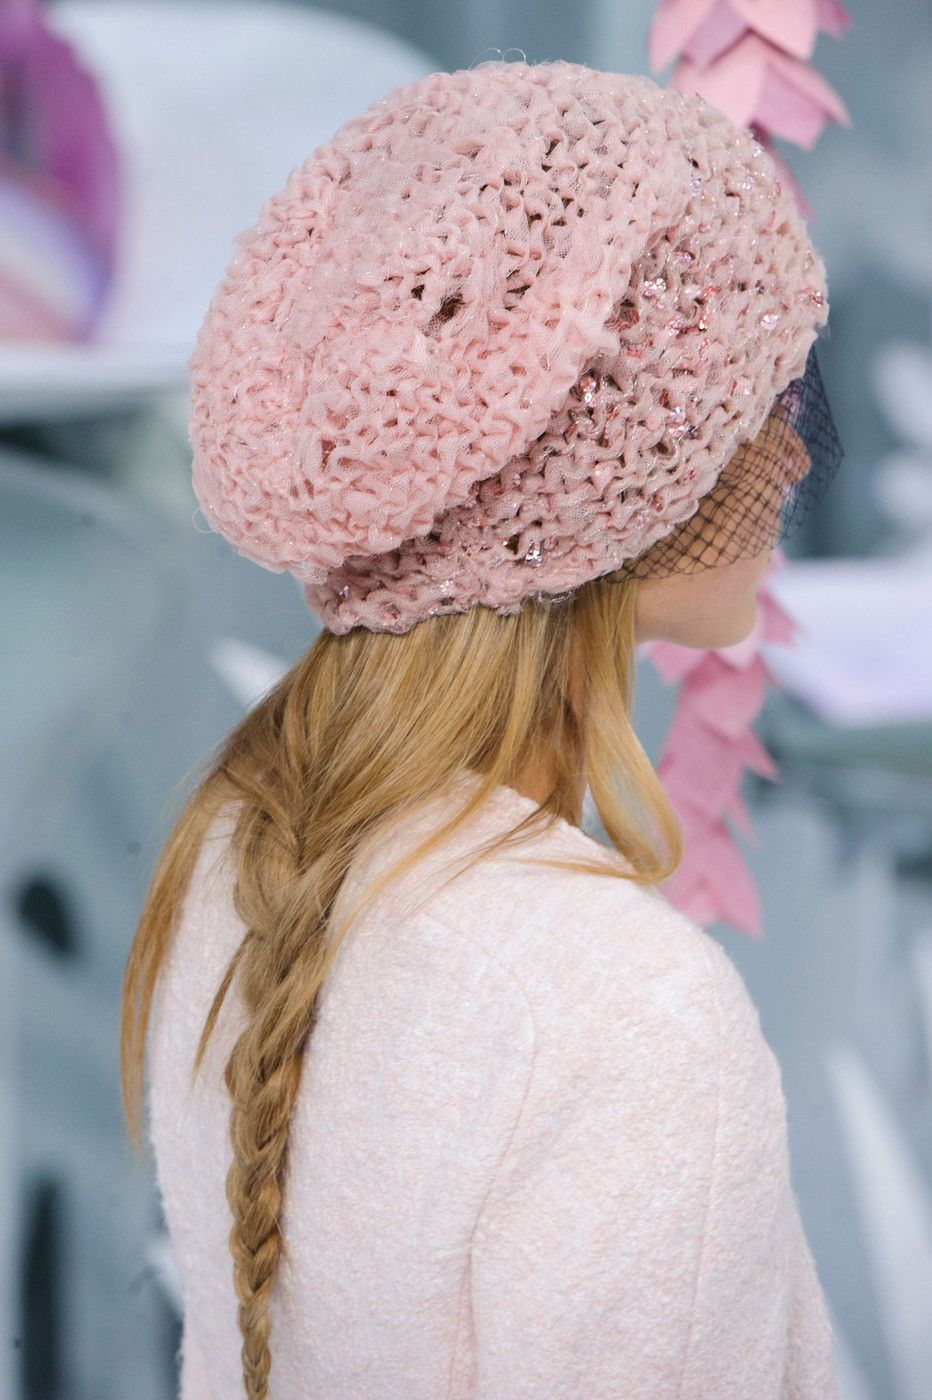 I didn't find time to post all of the Spring 2015 photos I saved but that doesn't mean I won't find something like this hat from the Chanel Haute Couture show - sans the veil, that is.